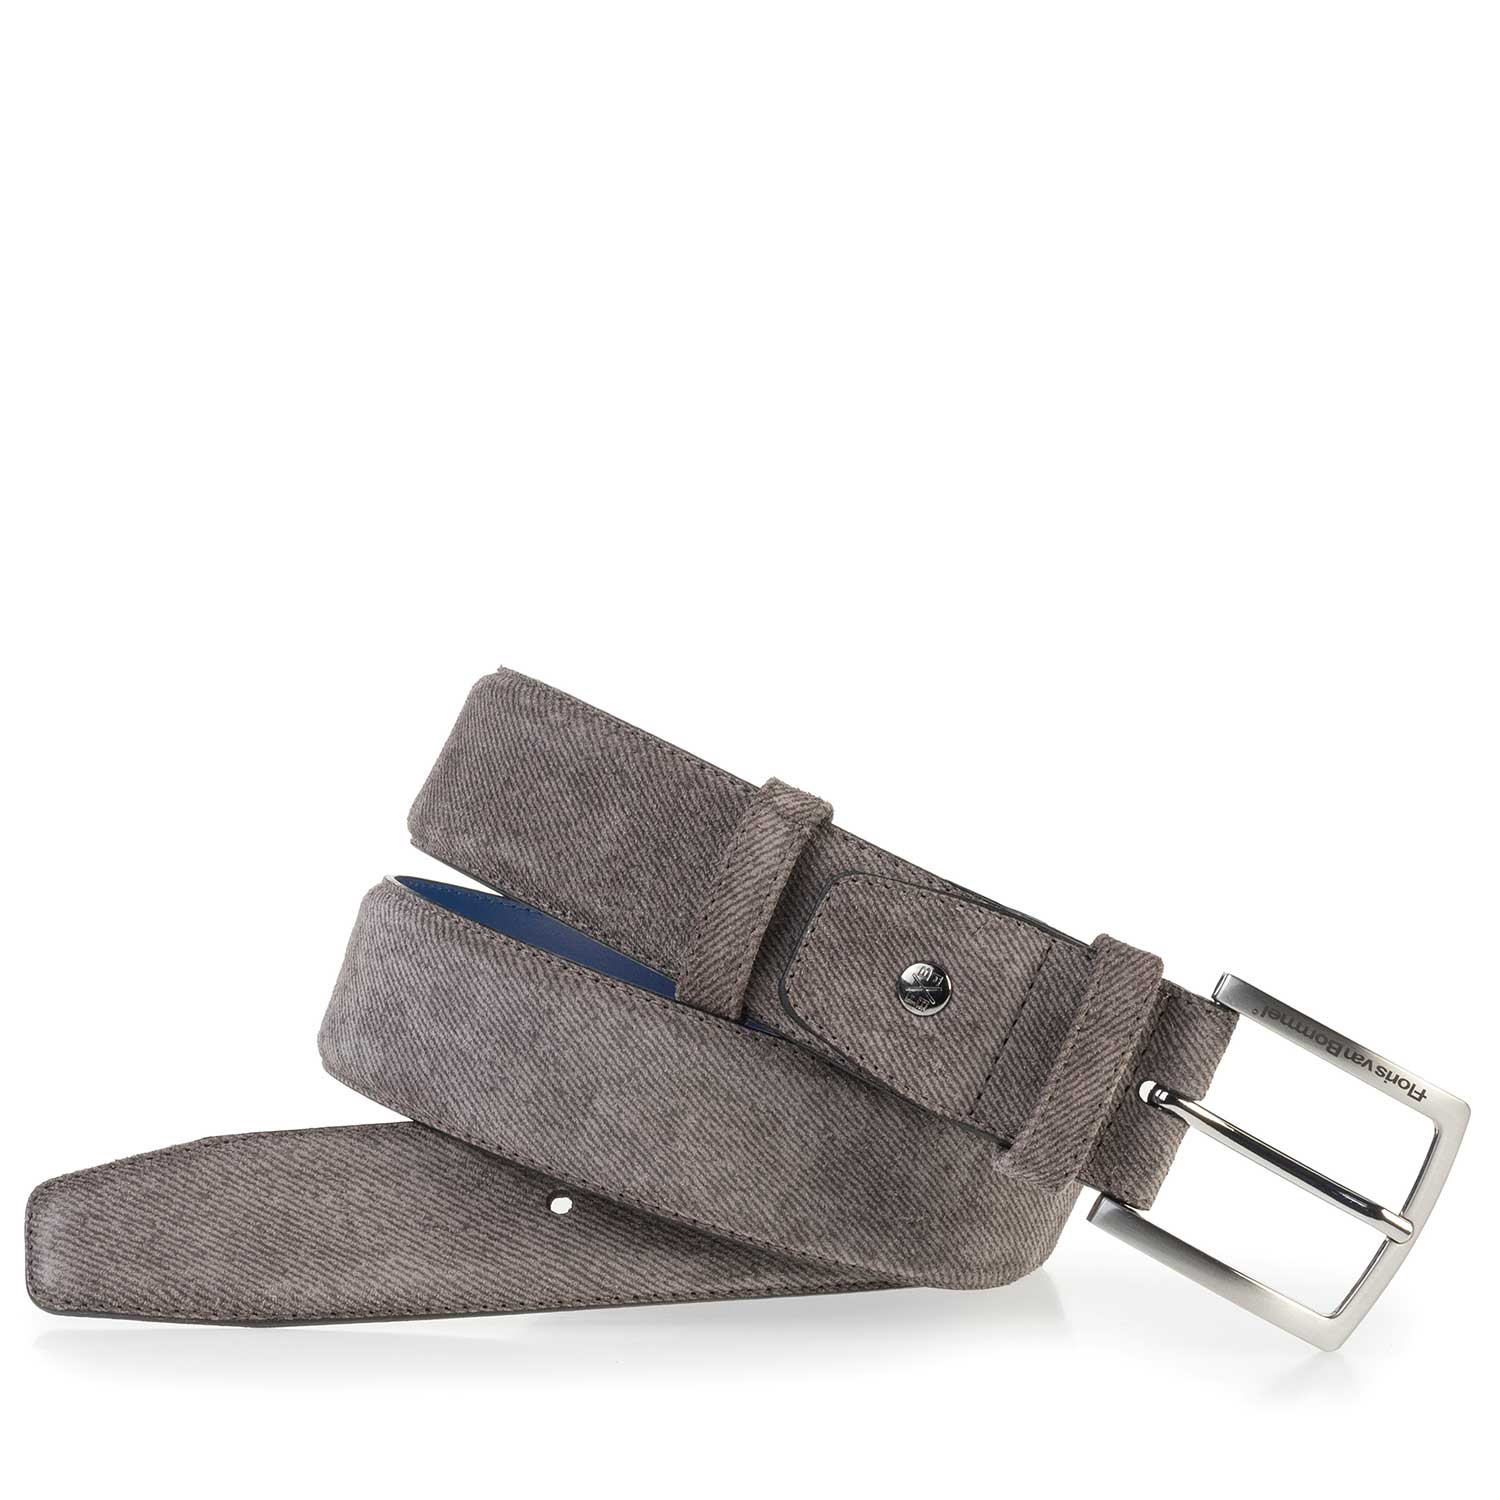 75181/11 - Grey suede leather belt with pattern